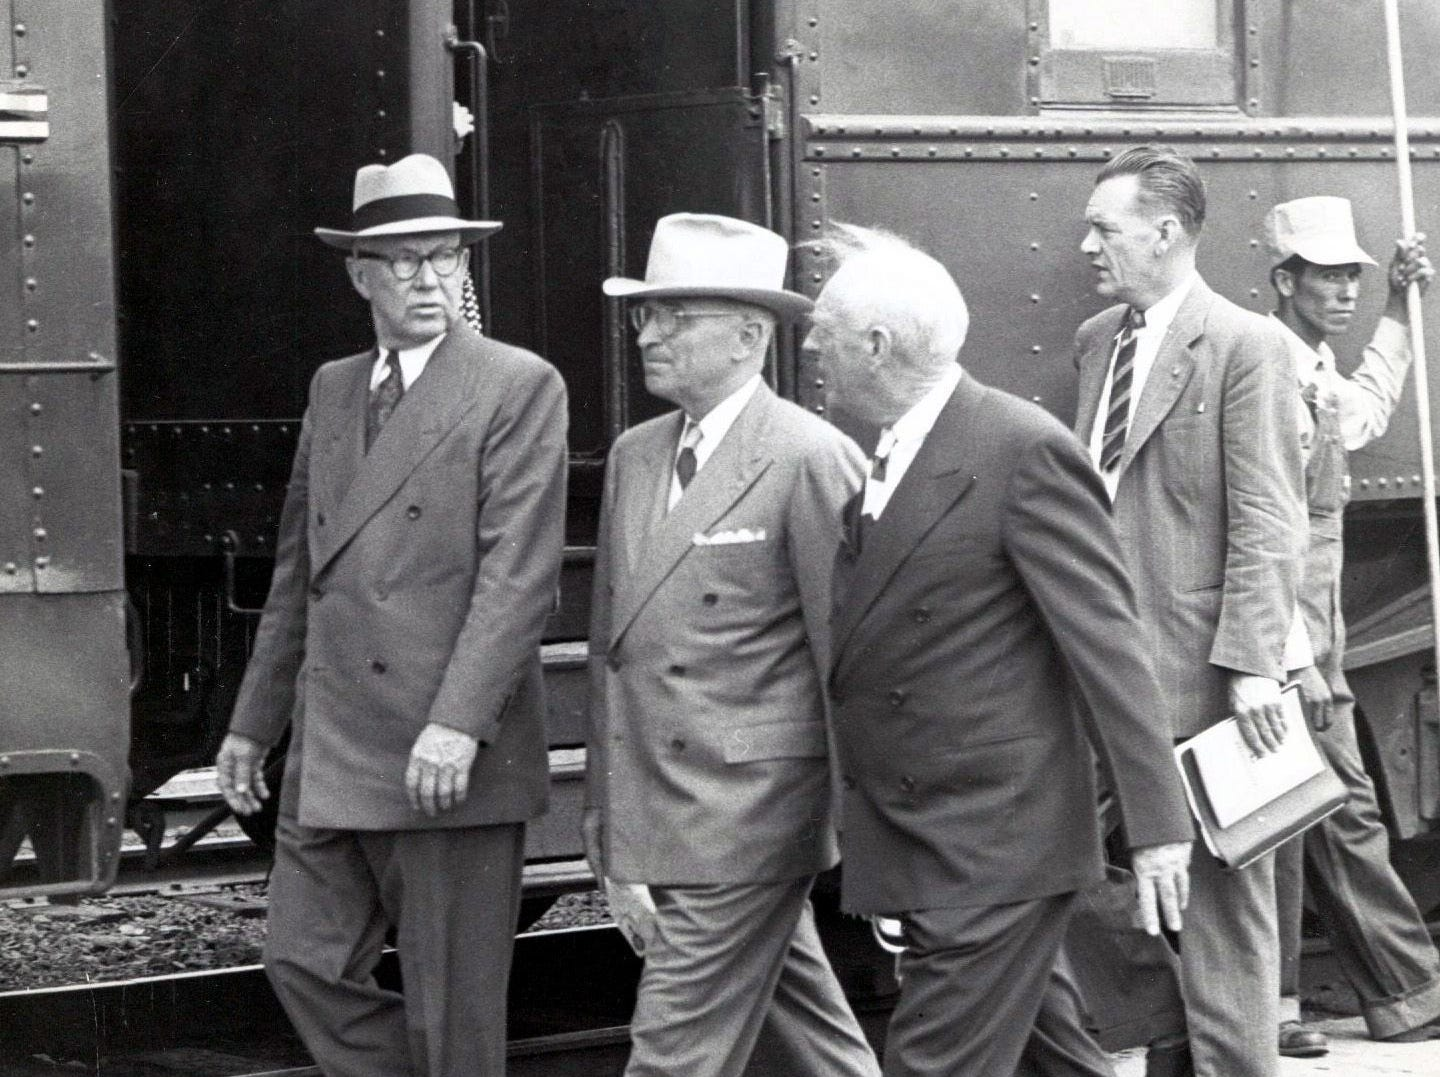 Federal Judge R.E. Thomason, President Harry Truman and Robert L. Holliday stride along briskly as the president prepared to board a train to continue his Texas tour after his El Paso speech on Sept. 25, 1948.